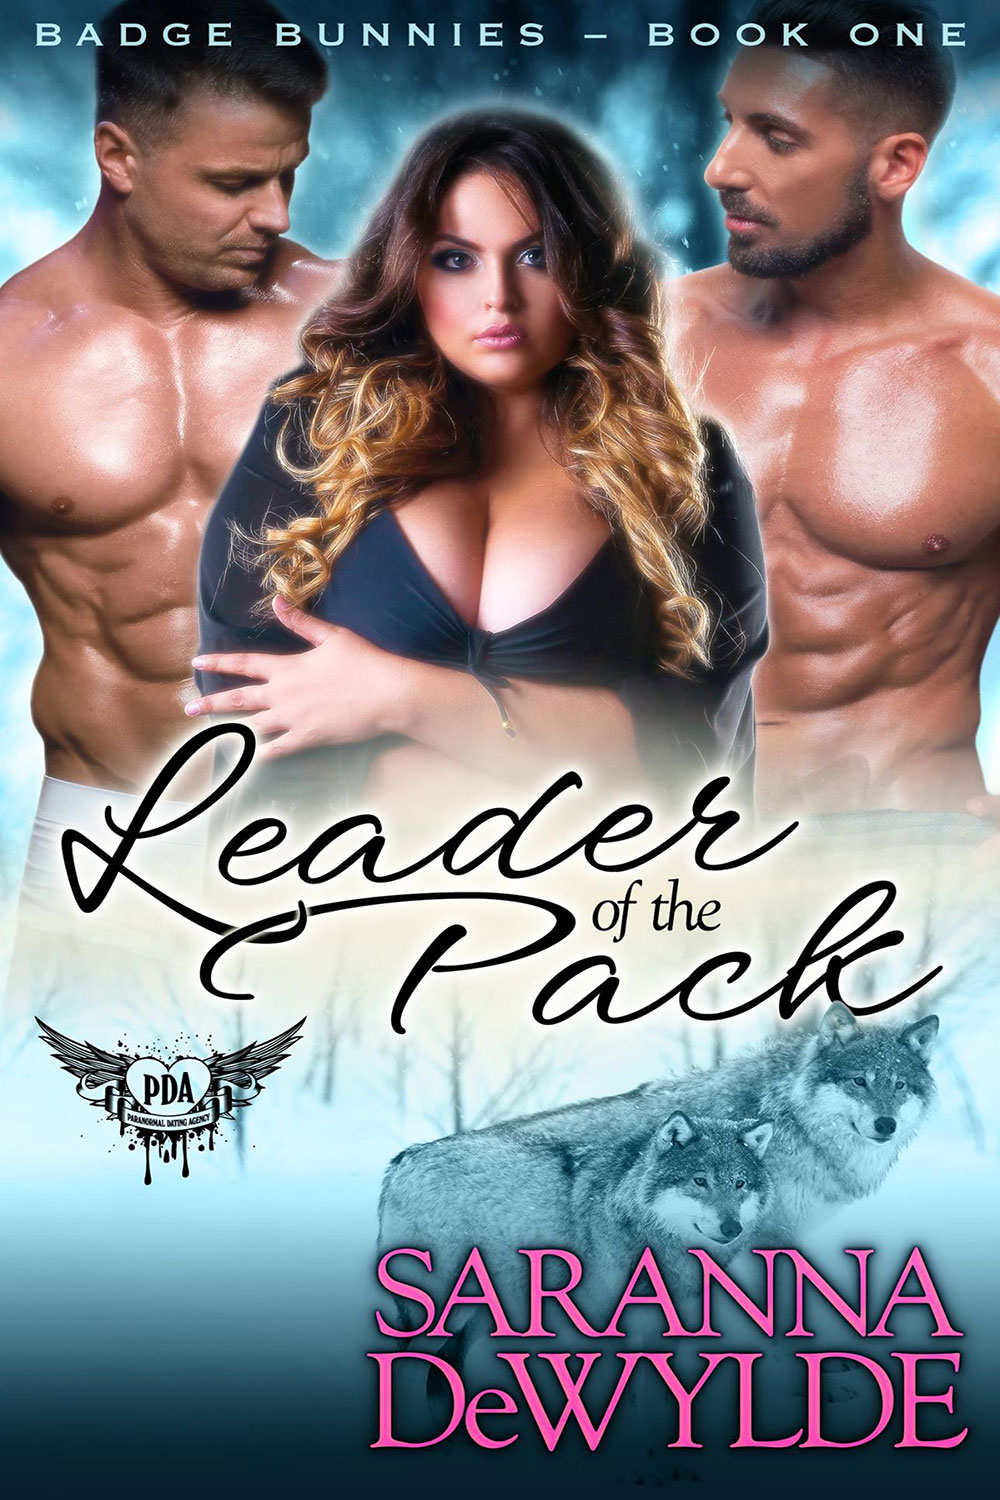 Leader of the Pack by Saranna DeWylde